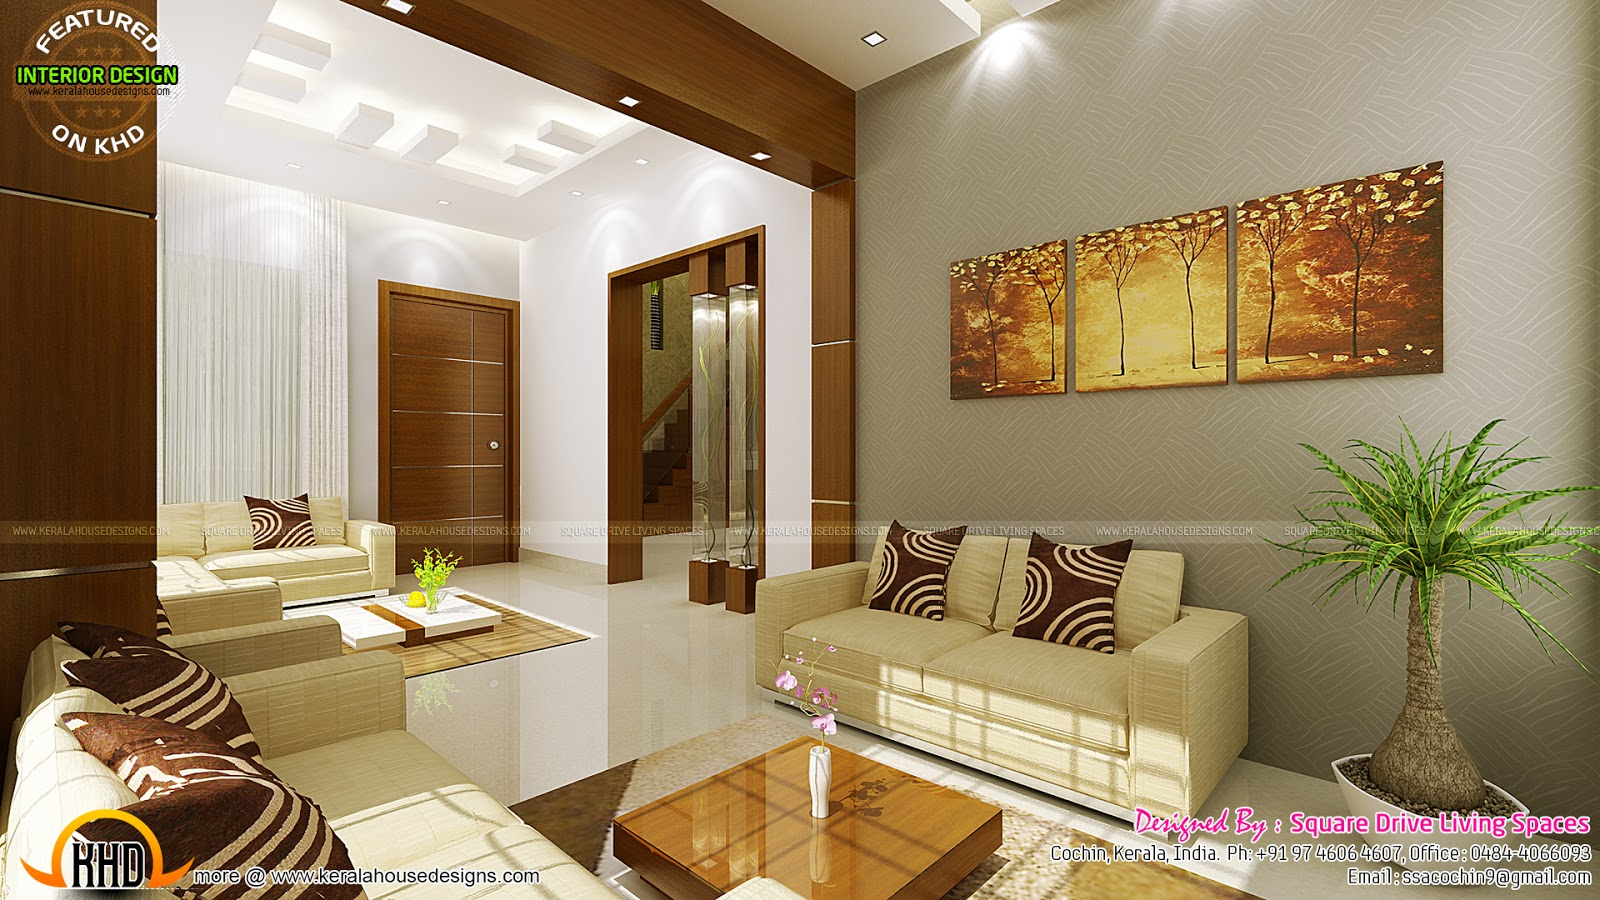 Contemporary kitchen dining and living room kerala home for Home interior design room